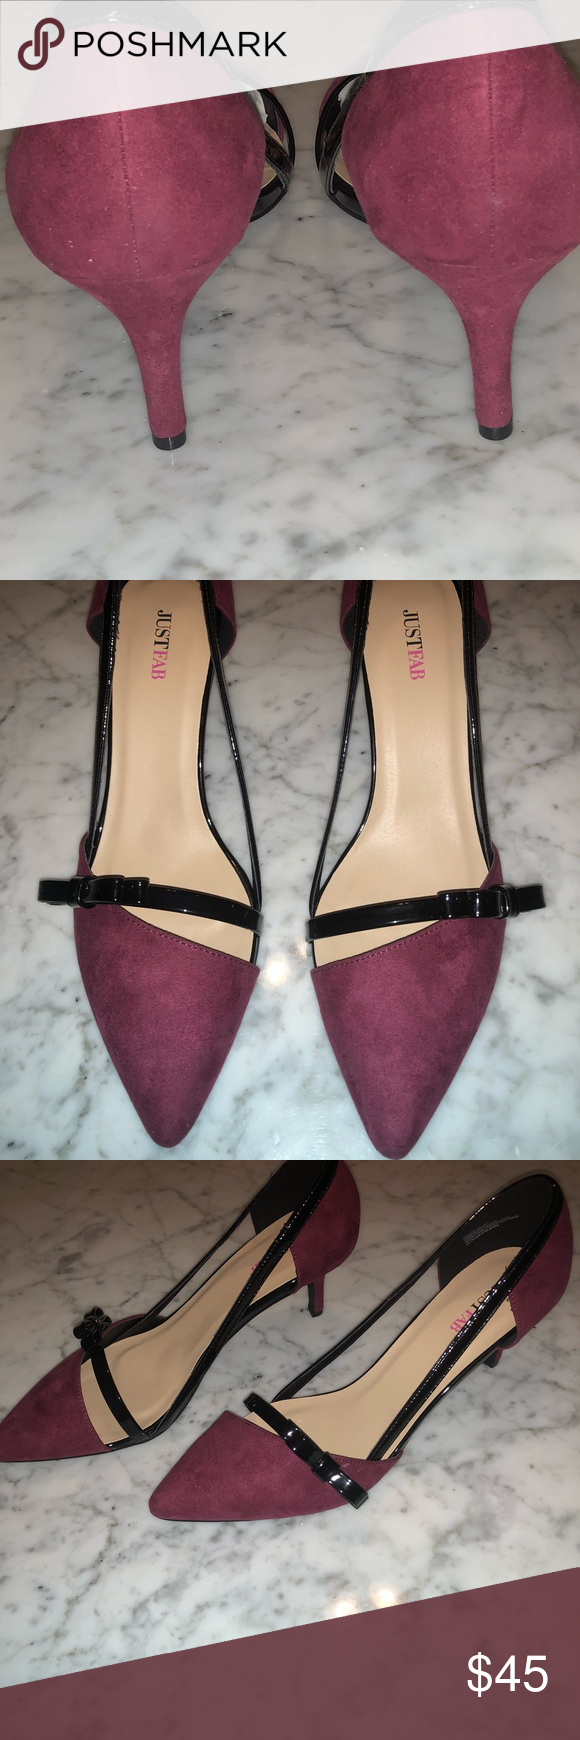 78ad26d1dc4 Women s Heels Size 11 Burgundy Pumps Burgundy Size 11 Women s Heels.  JustFab Shoes Heels